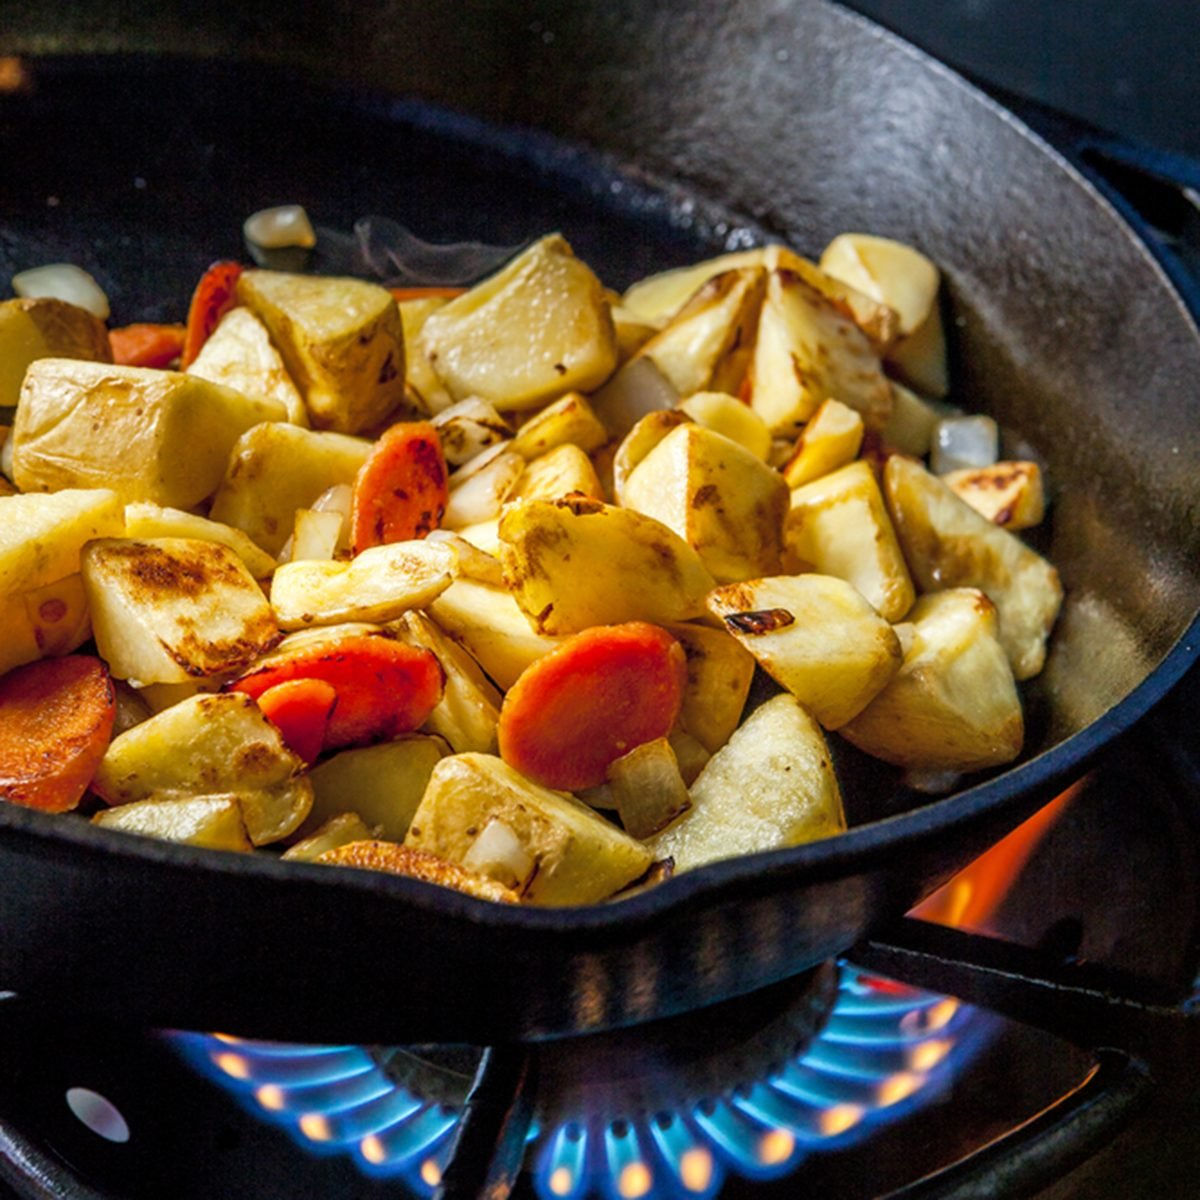 Potatoes in skillet over a fire.